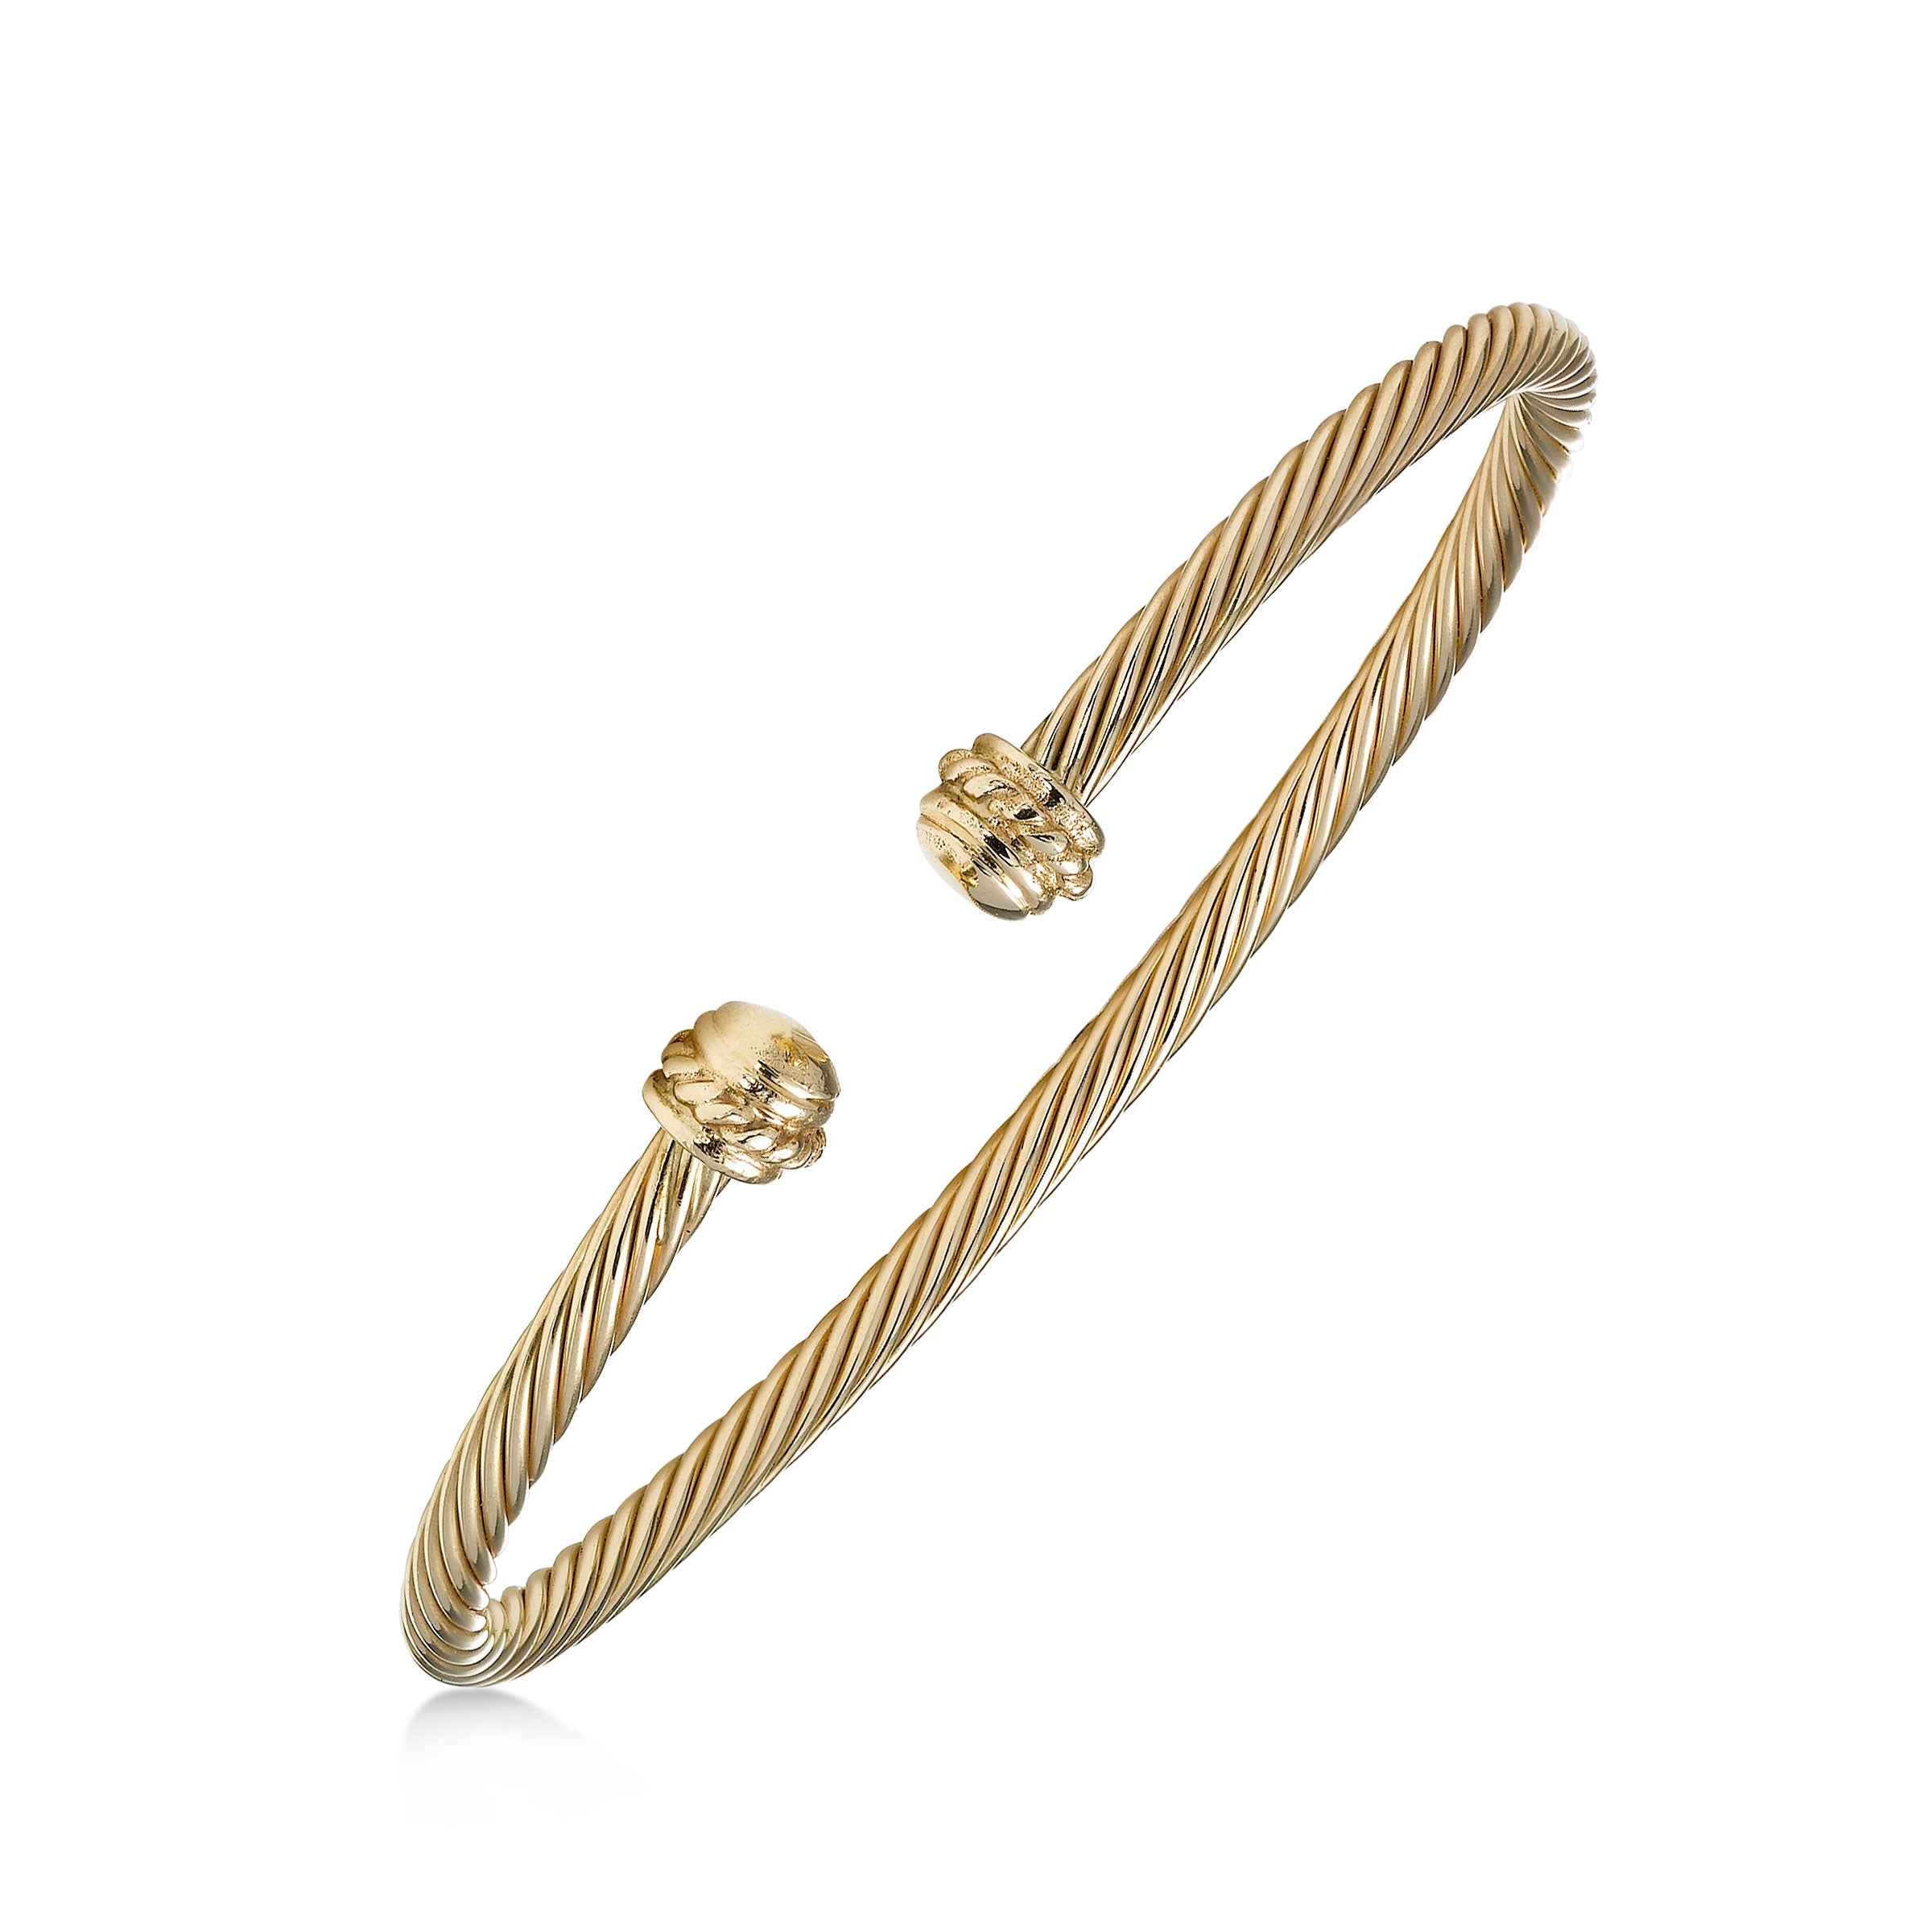 Twist Motif Cuff Bracelet, 14K Yellow Gold